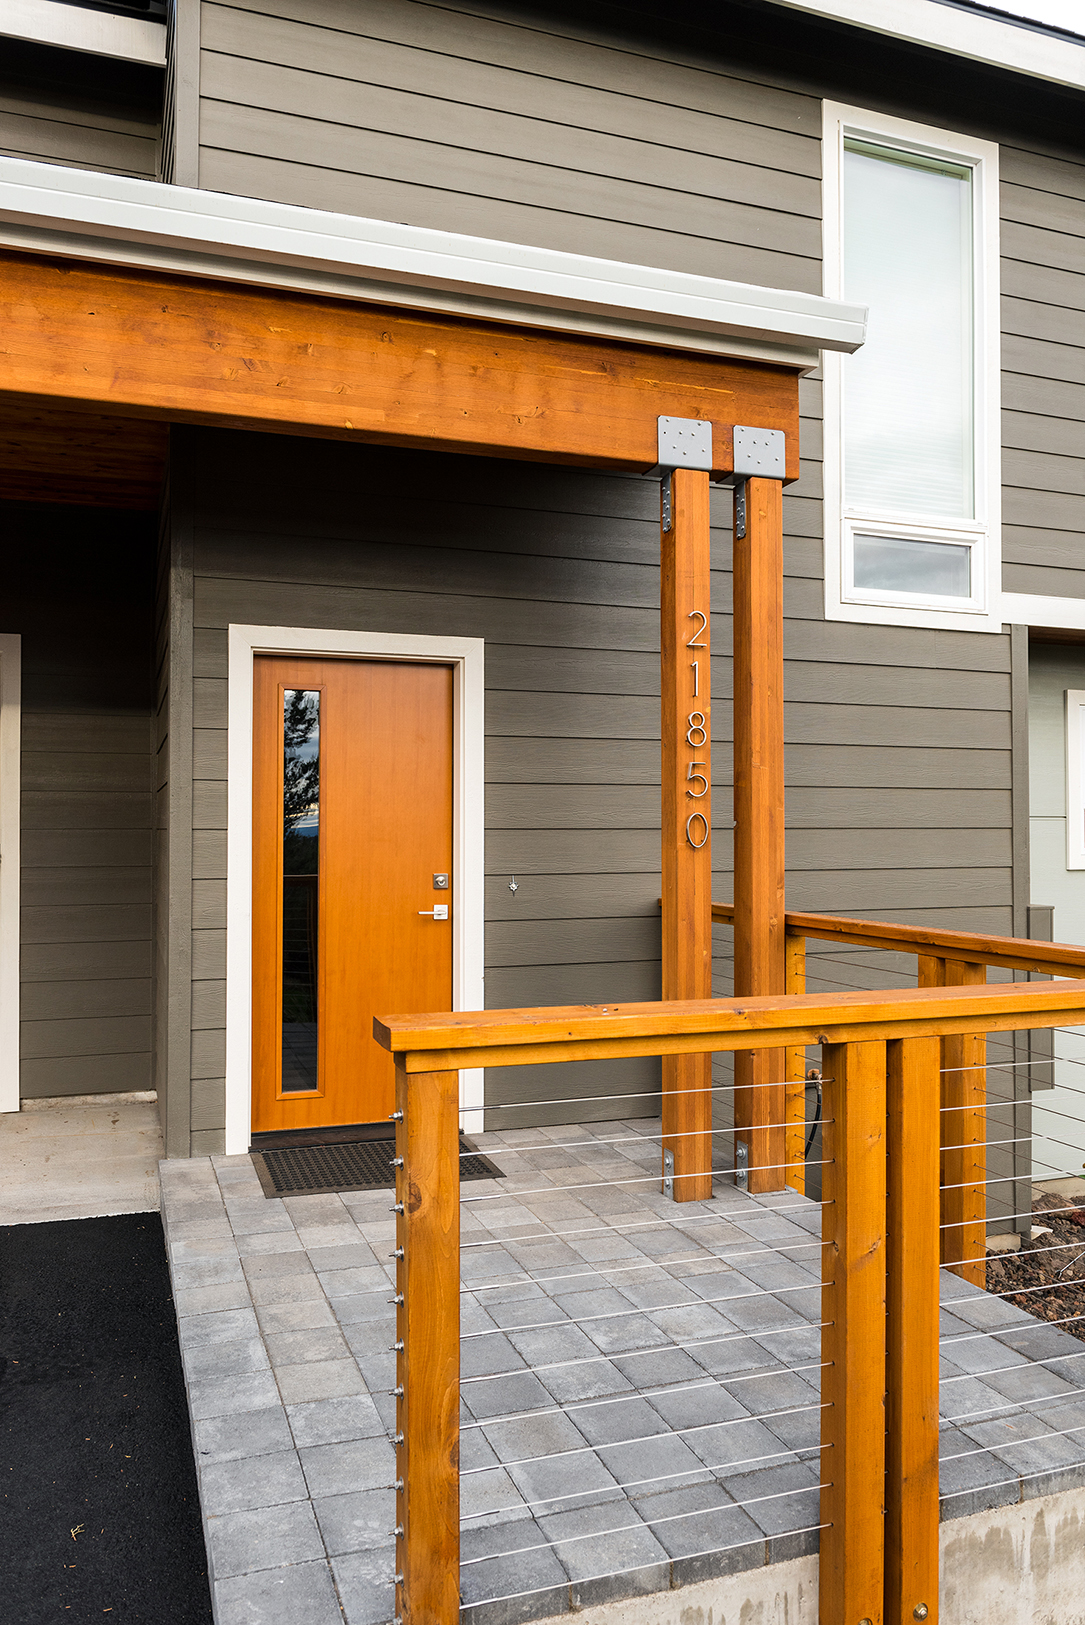 pgc-building-design-bend-oregon-parno-rgb-1625px-PGC-8348